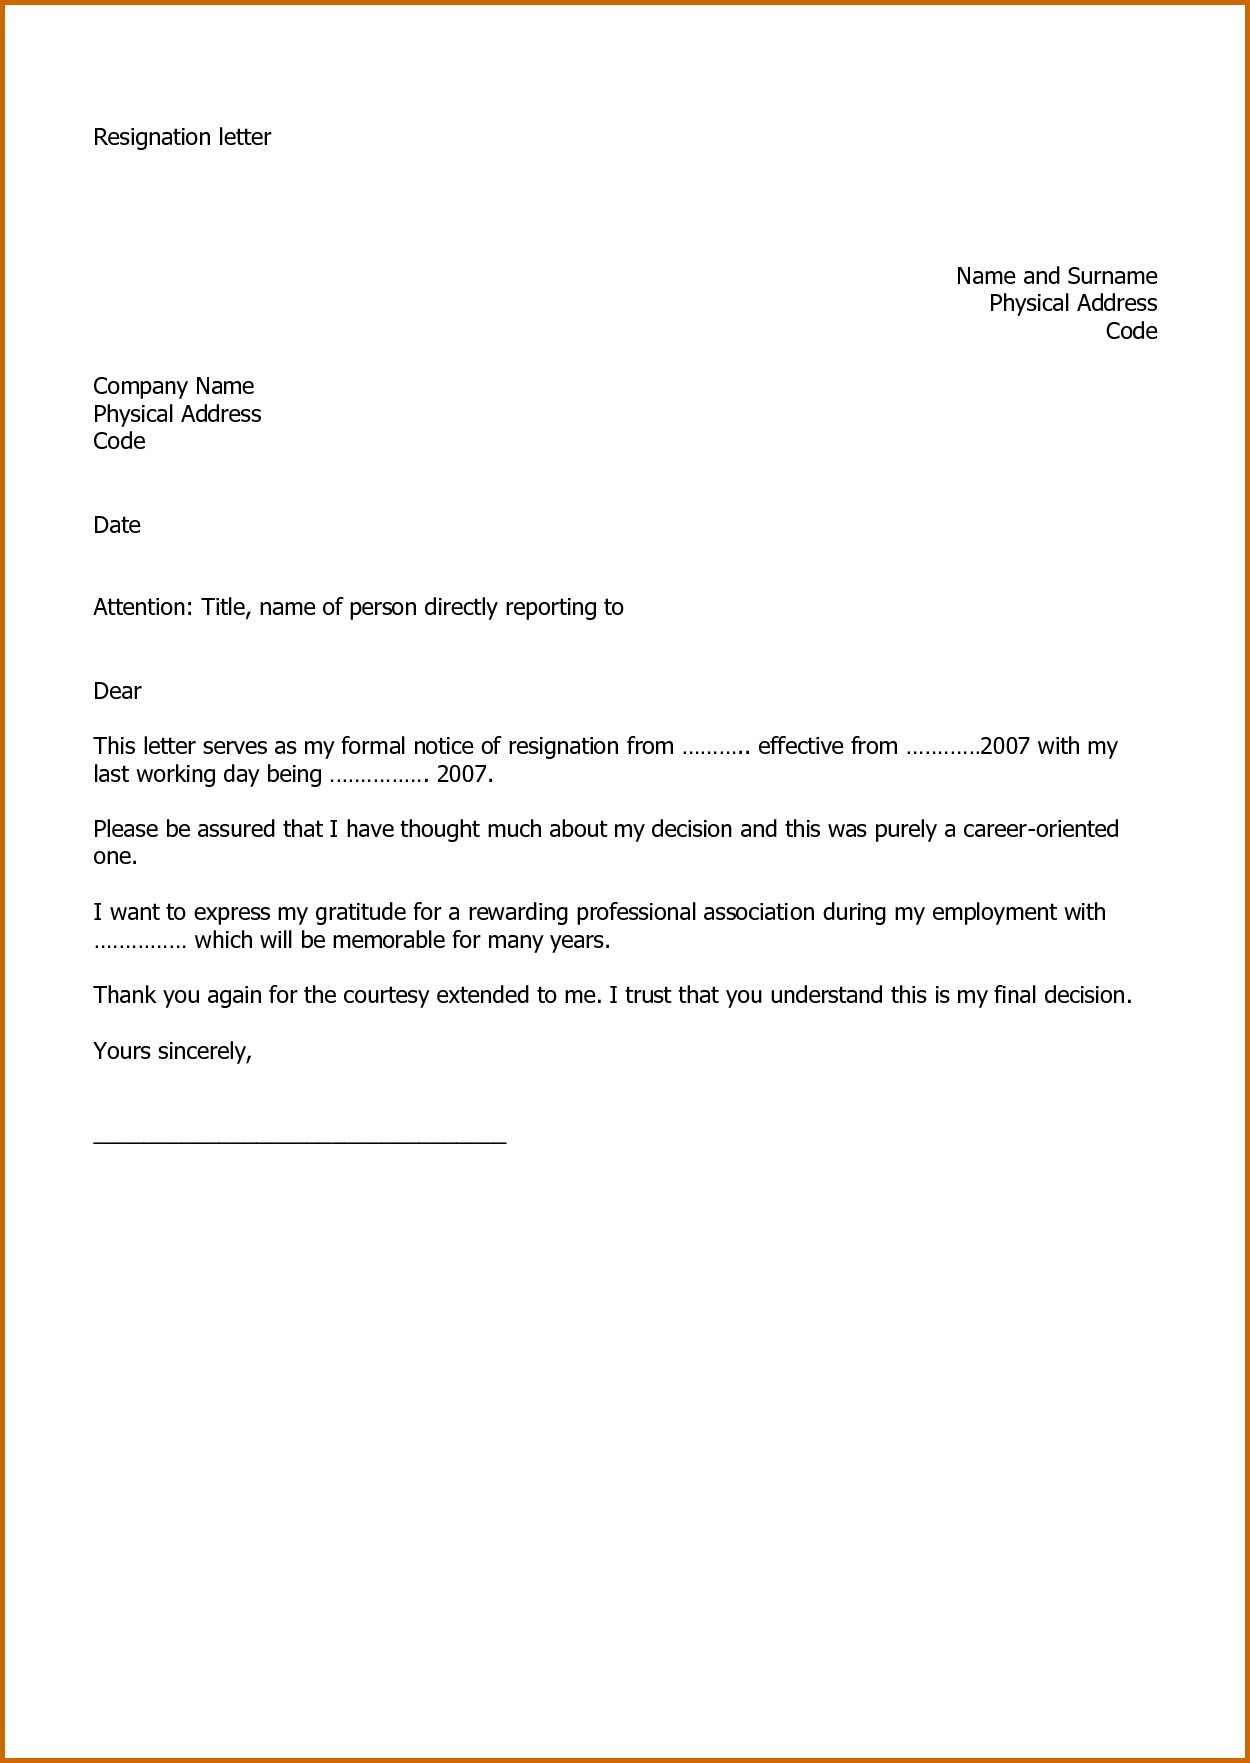 Professional Resignation Letter Template - Thank You Letter after Finishing A Job Save Resignation Letter for